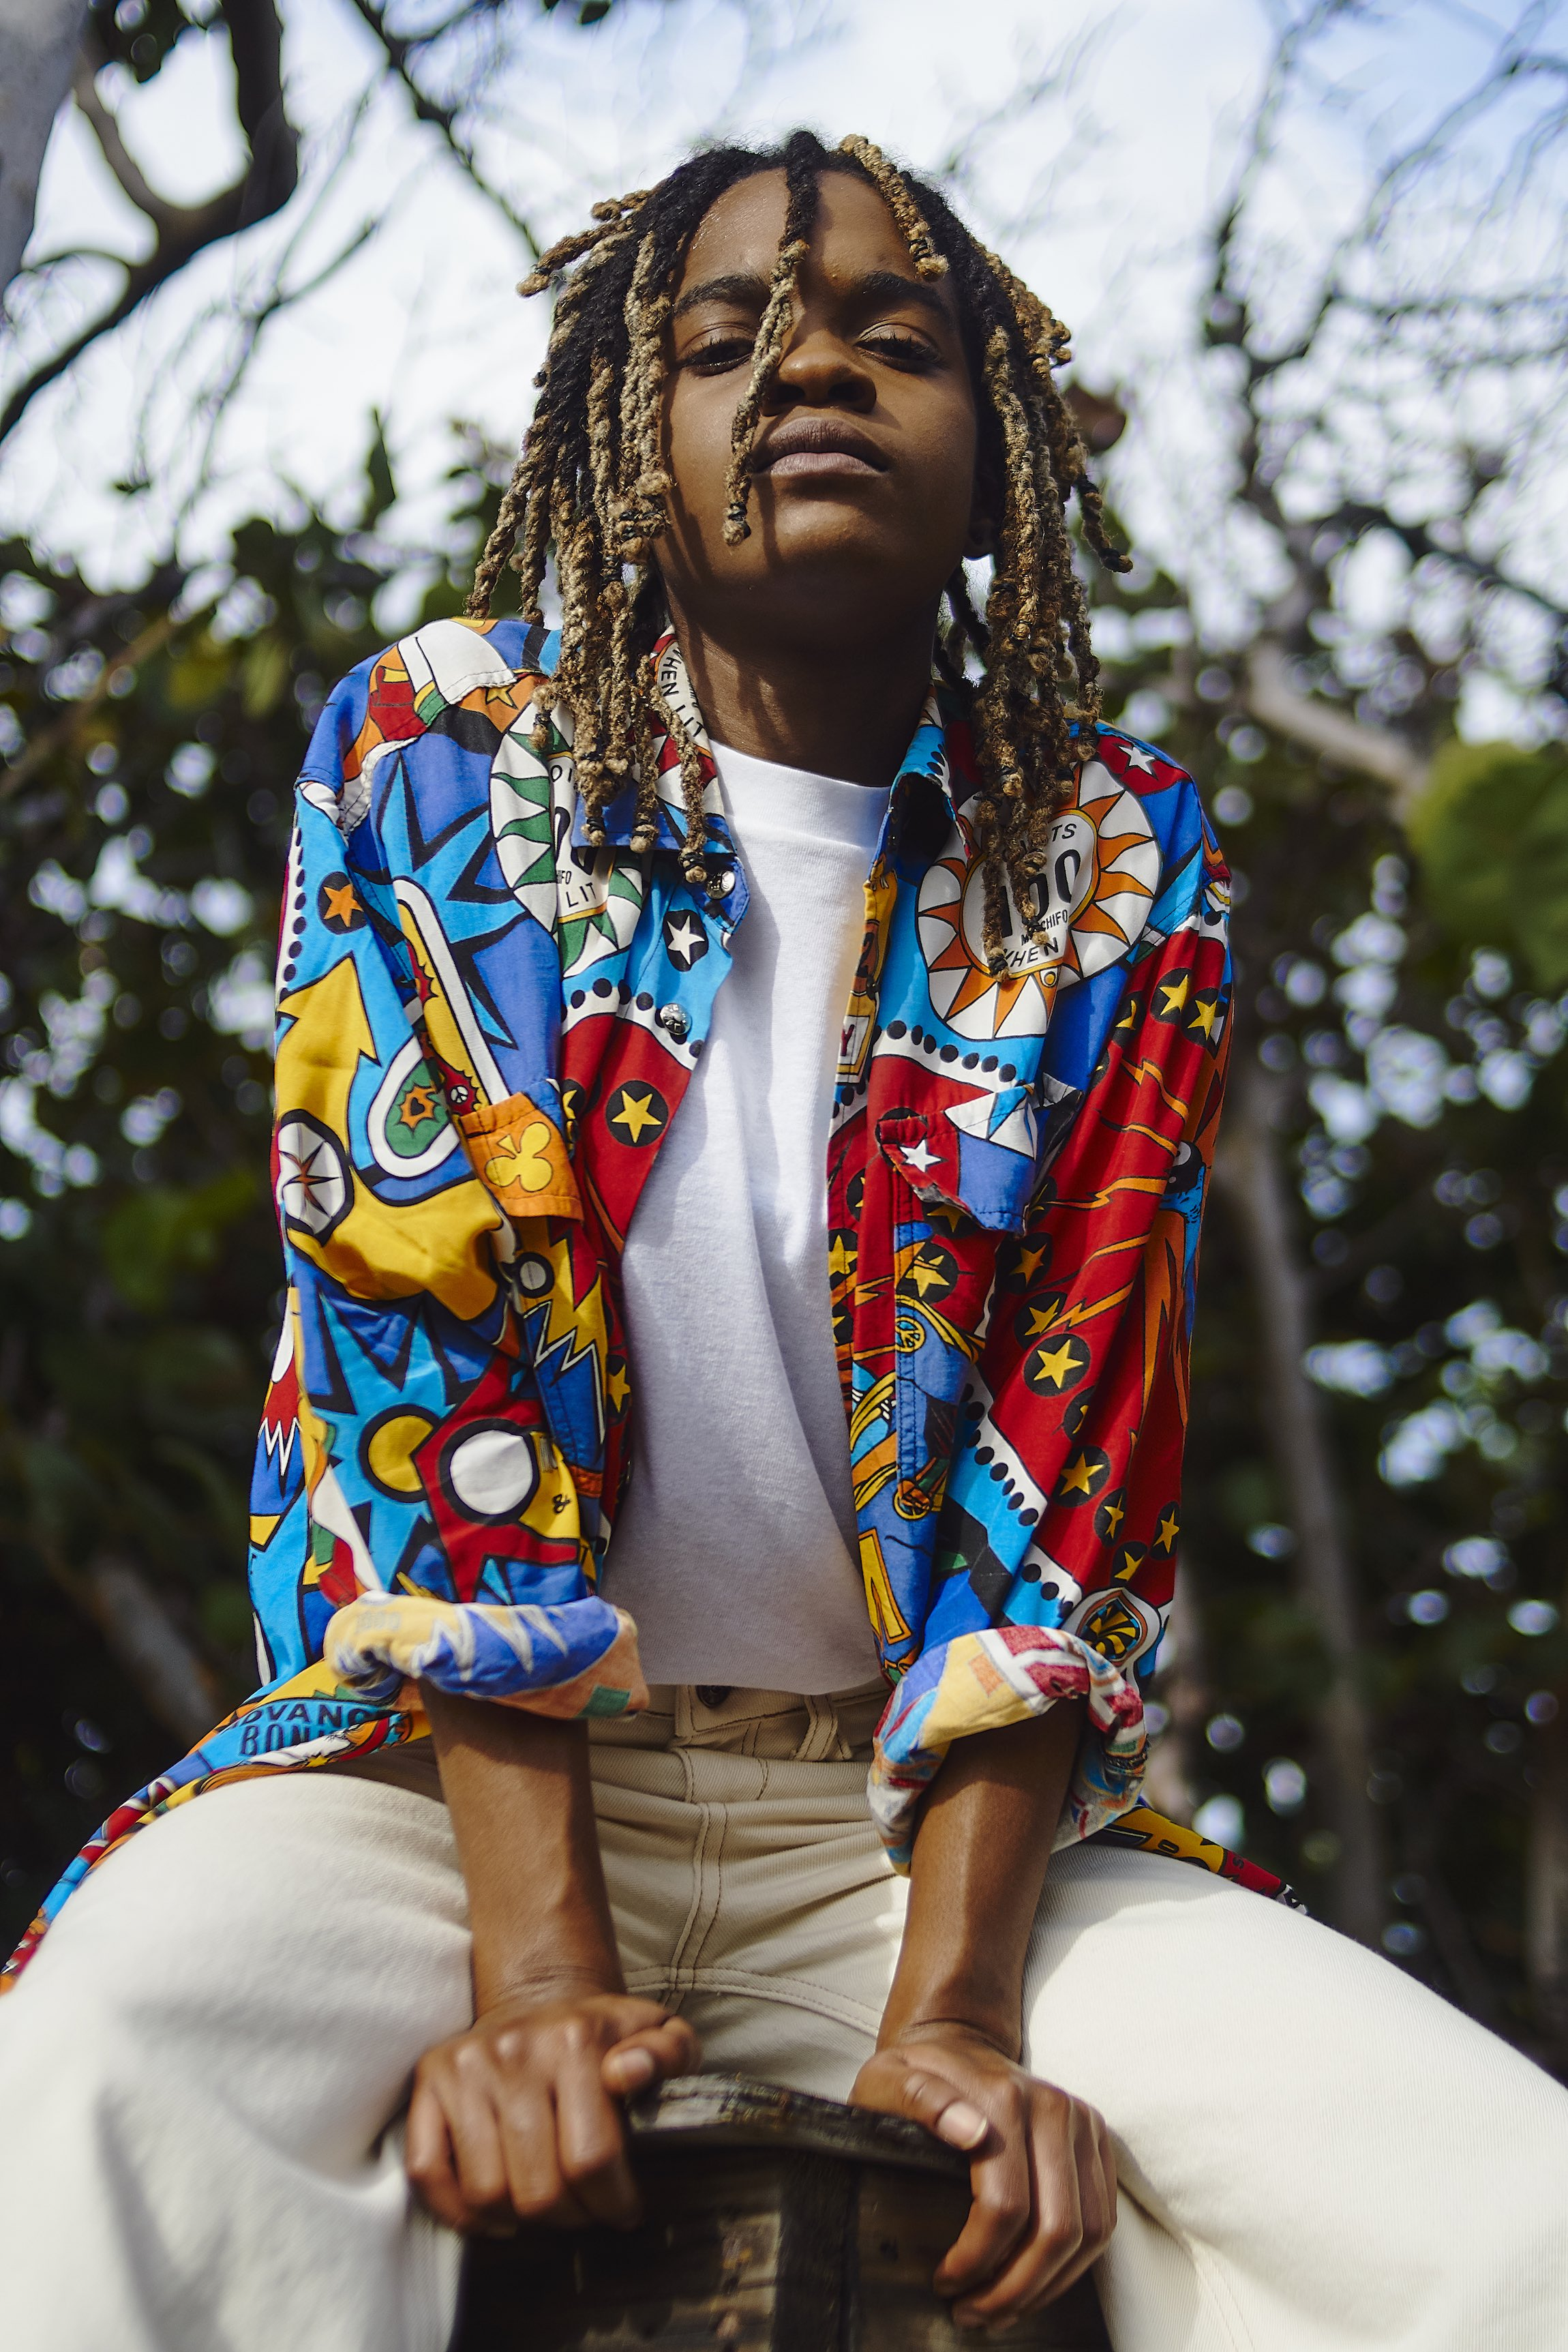 Koffee Is the Rising Teen Star of Reggae's New Wave - VICE